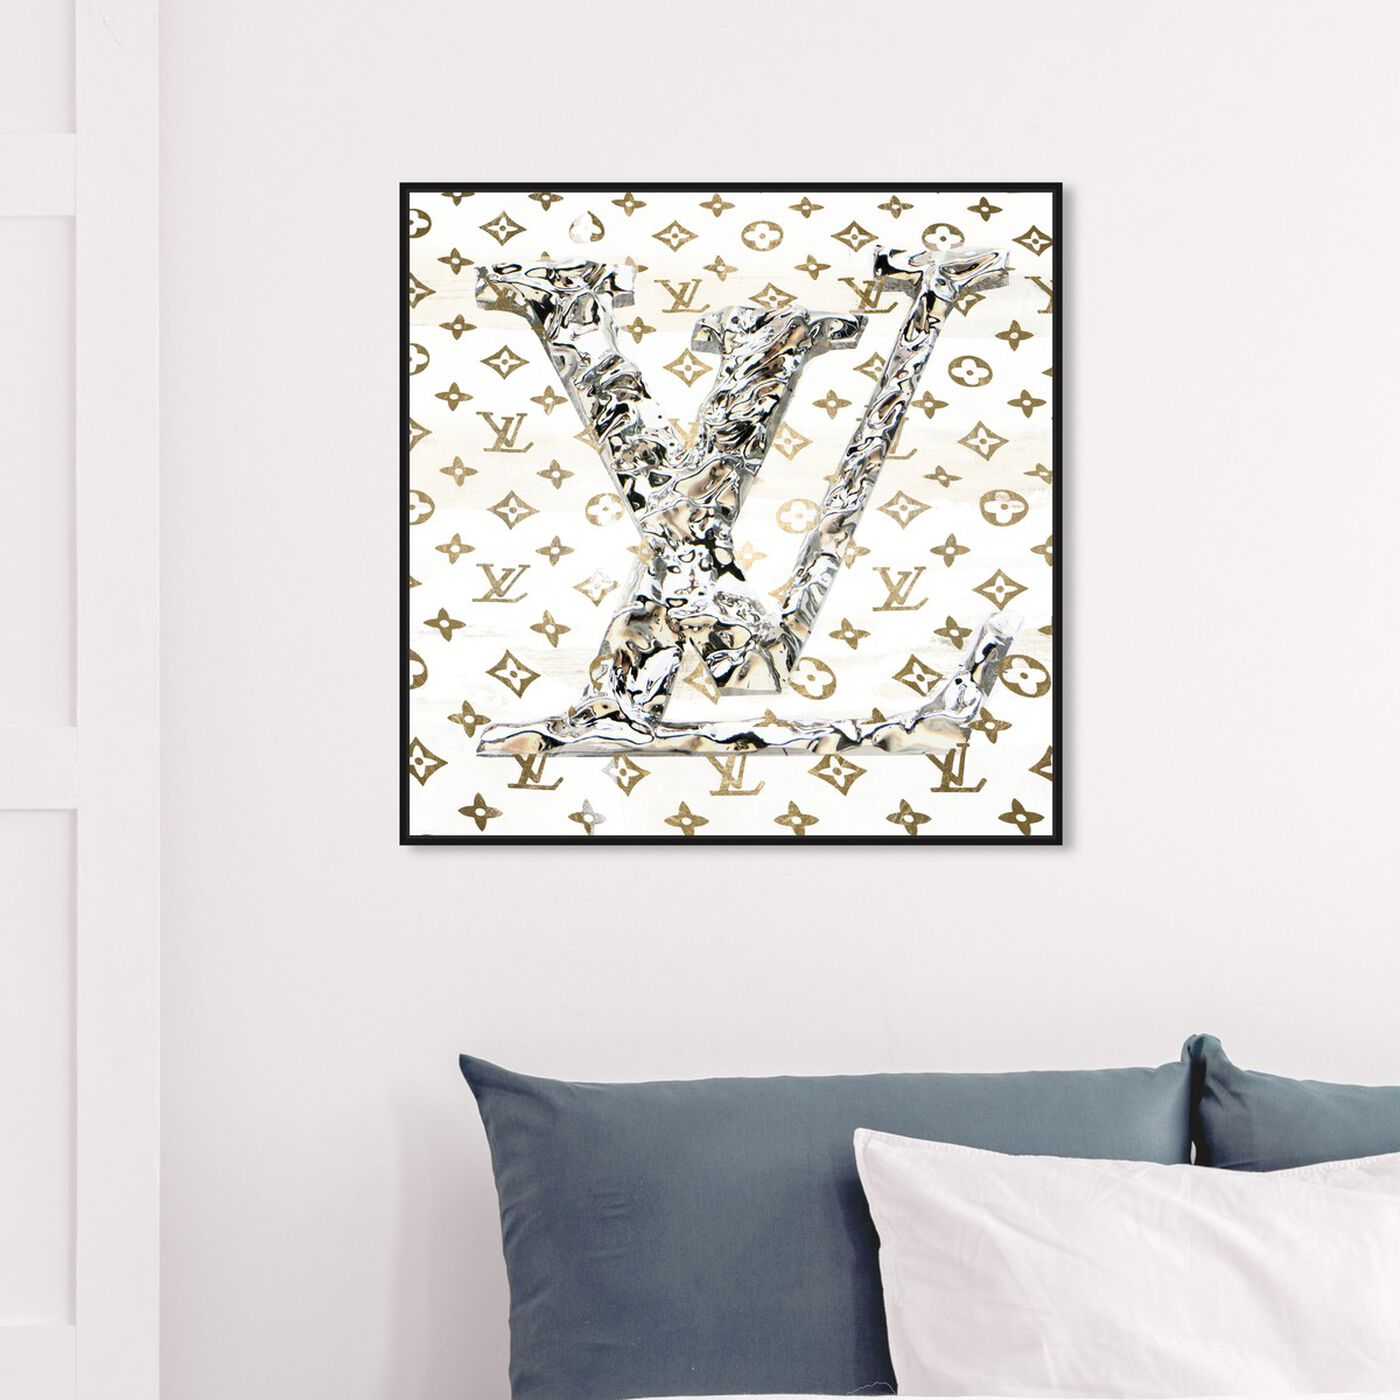 Hanging view of Paris Statement featuring fashion and glam and fashion art.